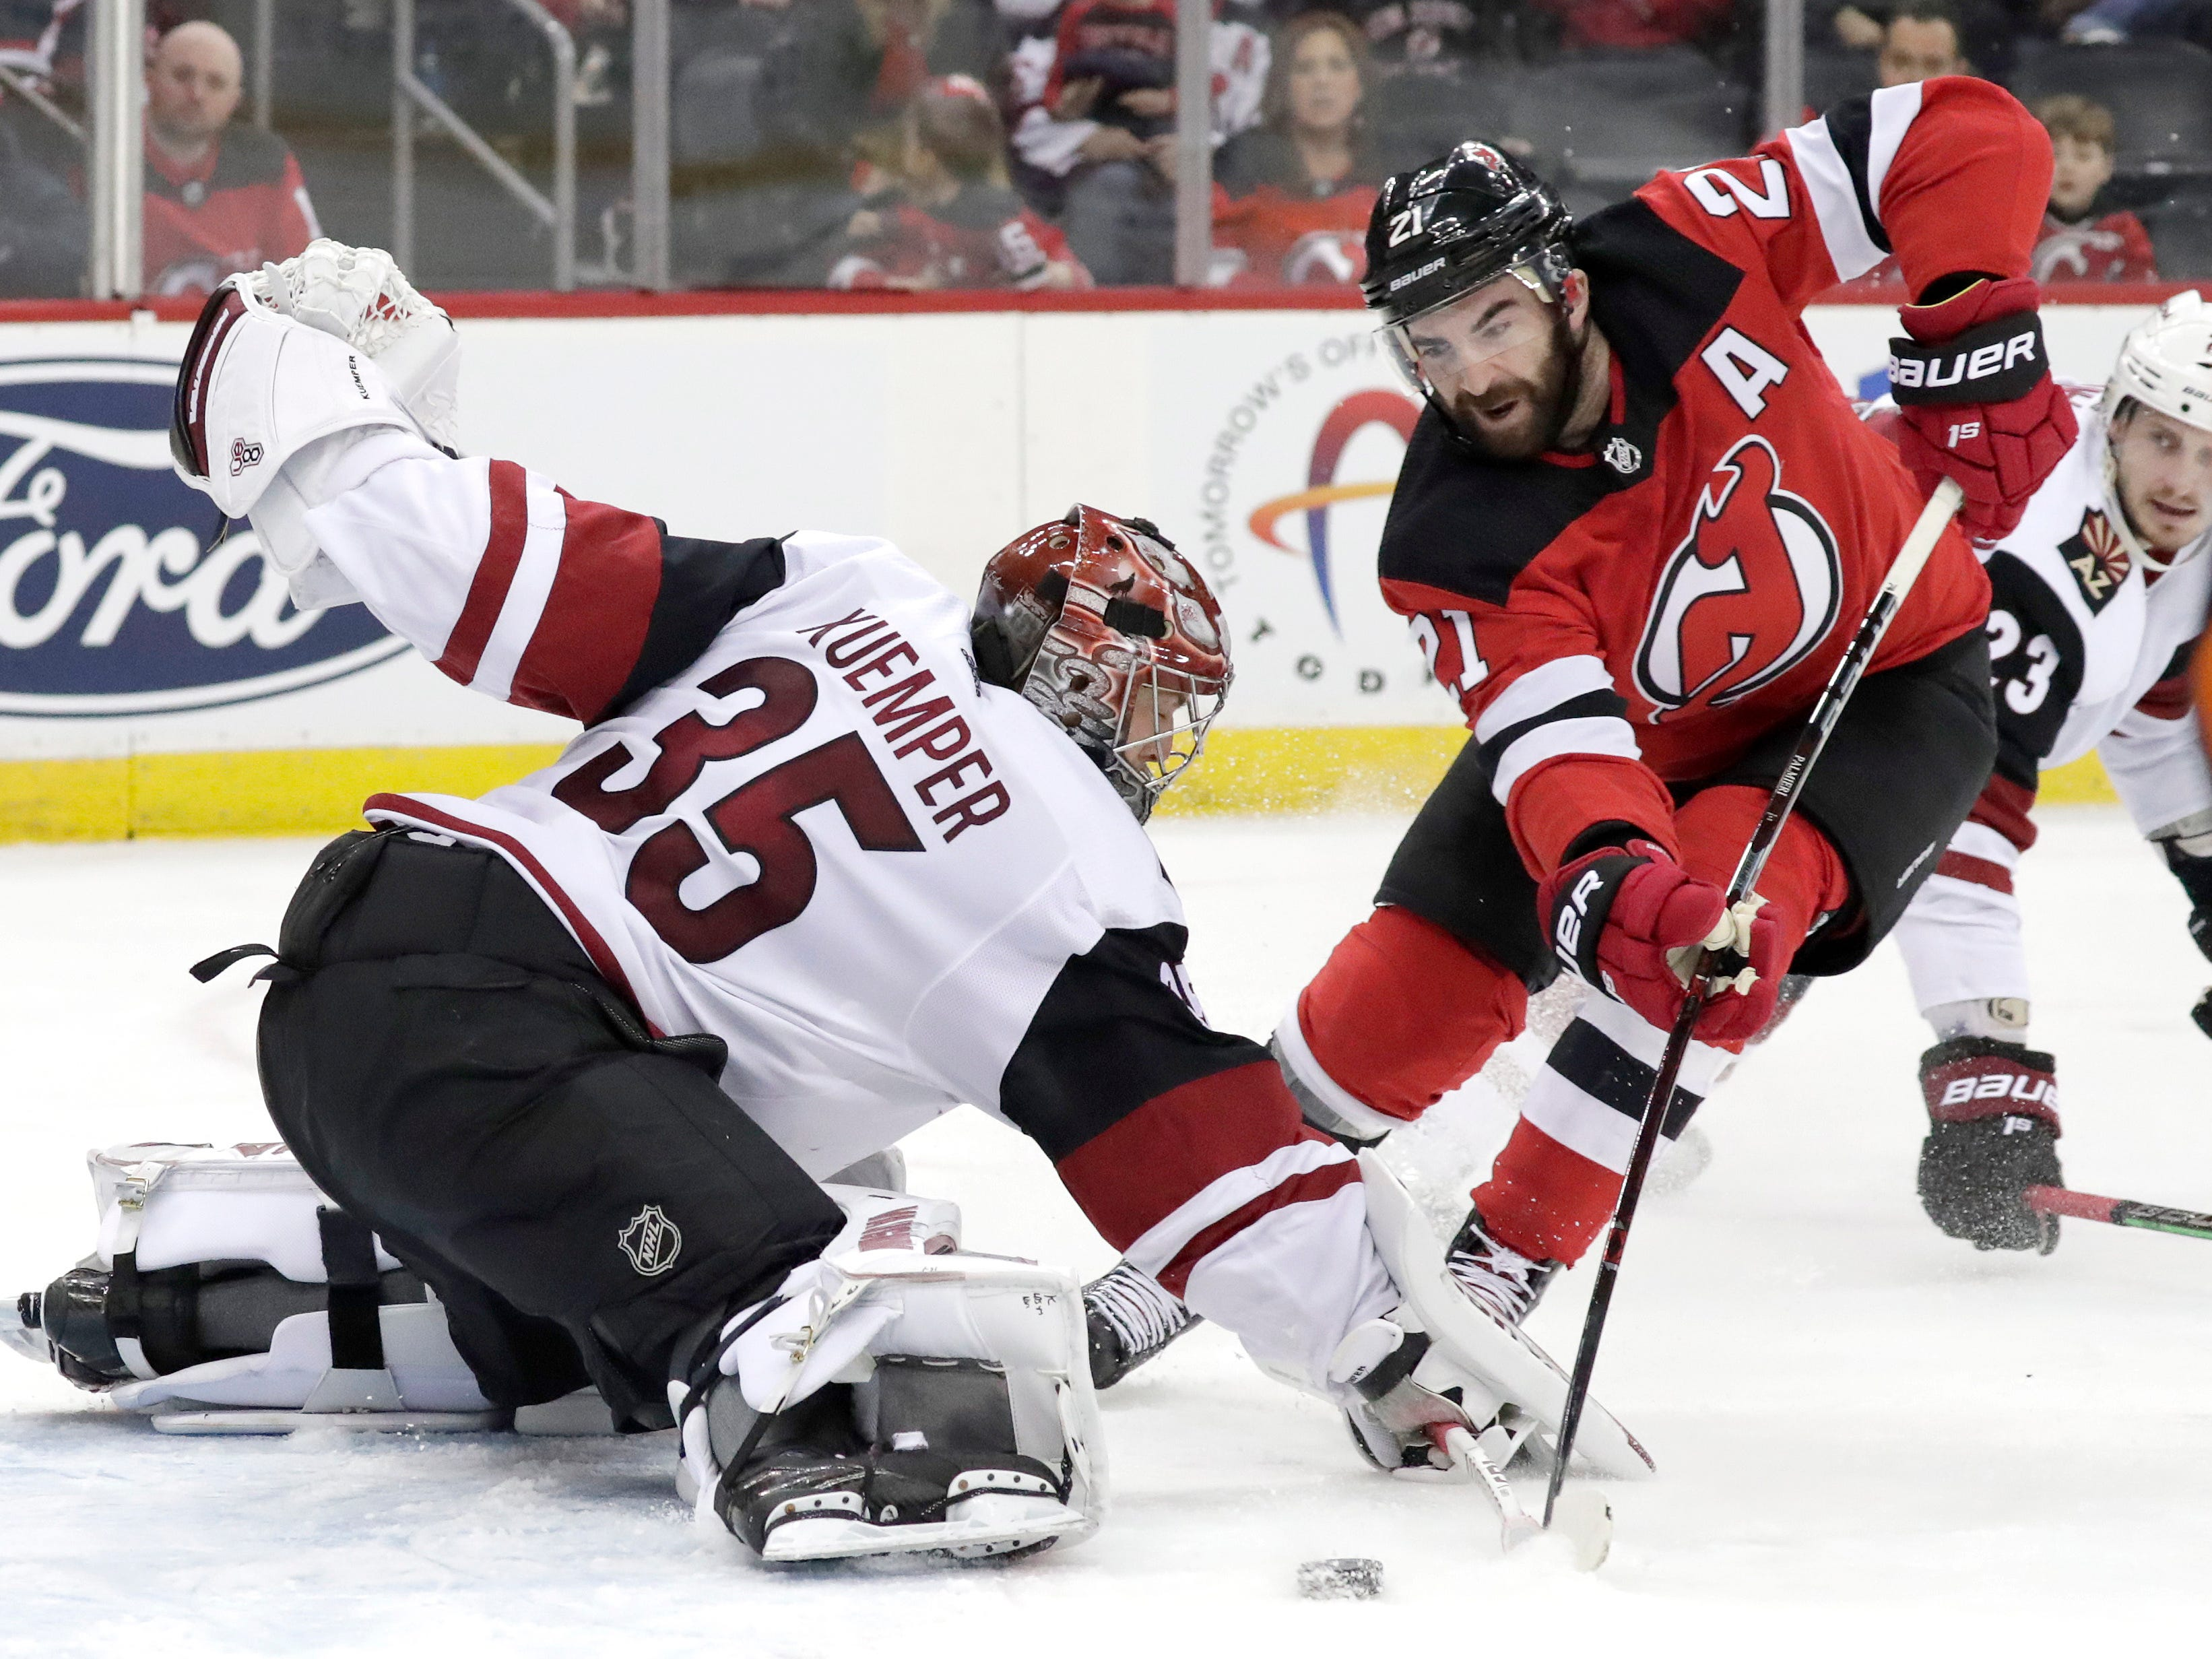 Arizona Coyotes goaltender Darcy Kuemper (35) tries to make a save as New Jersey Devils right wing Kyle Palmieri (21) attacks during the second period of an NHL hockey game, Saturday, March 23, 2019, in Newark, N.J.